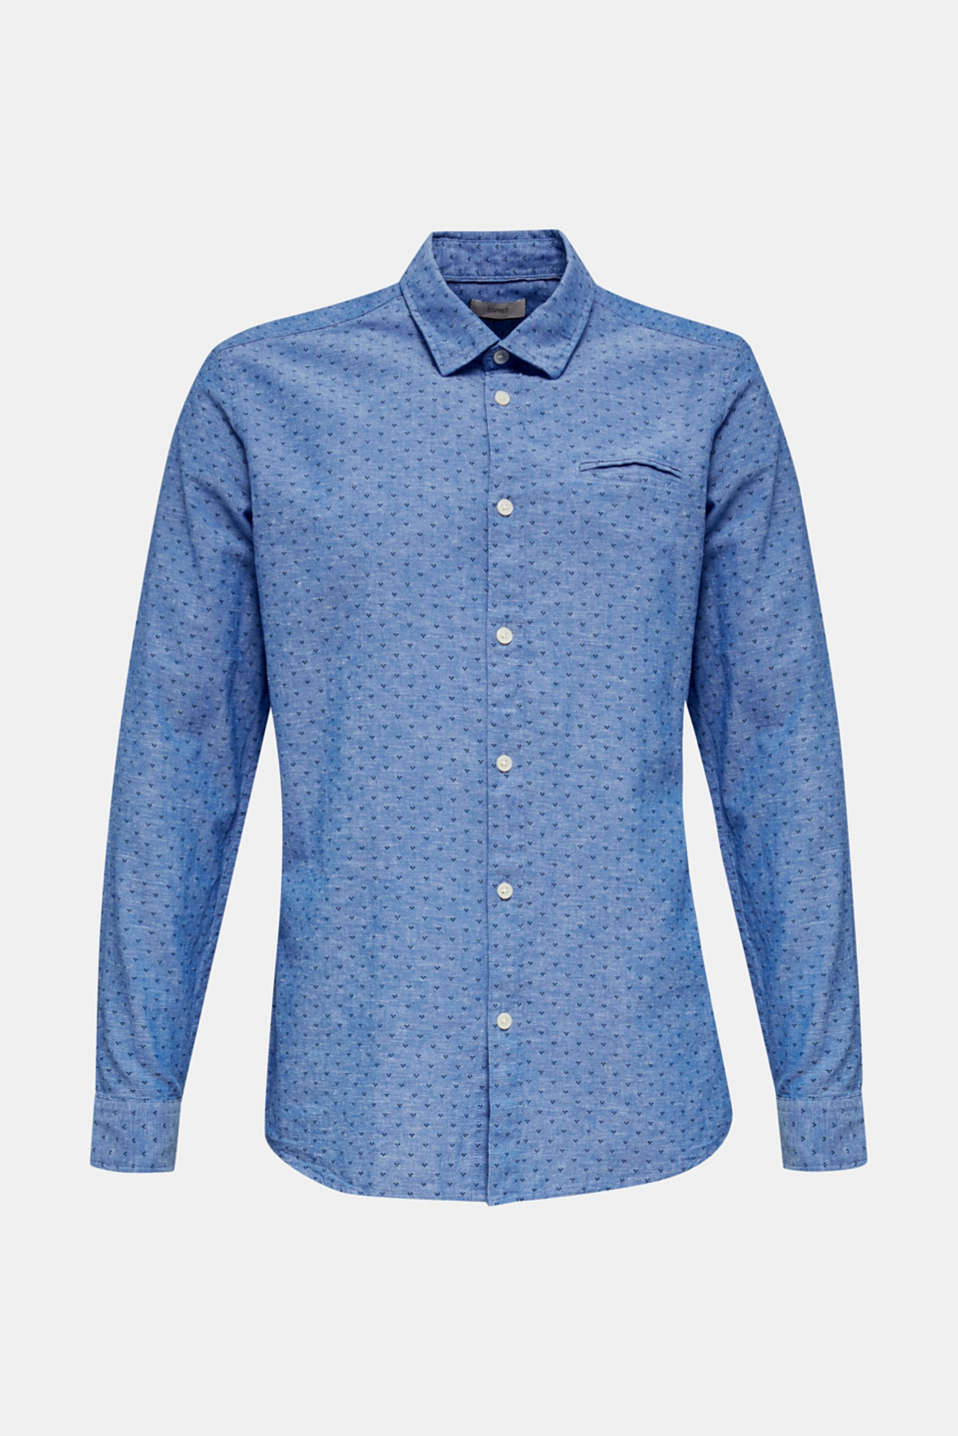 Blended linen: Shirt with a micro pattern, LIGHT BLUE 4, detail image number 5